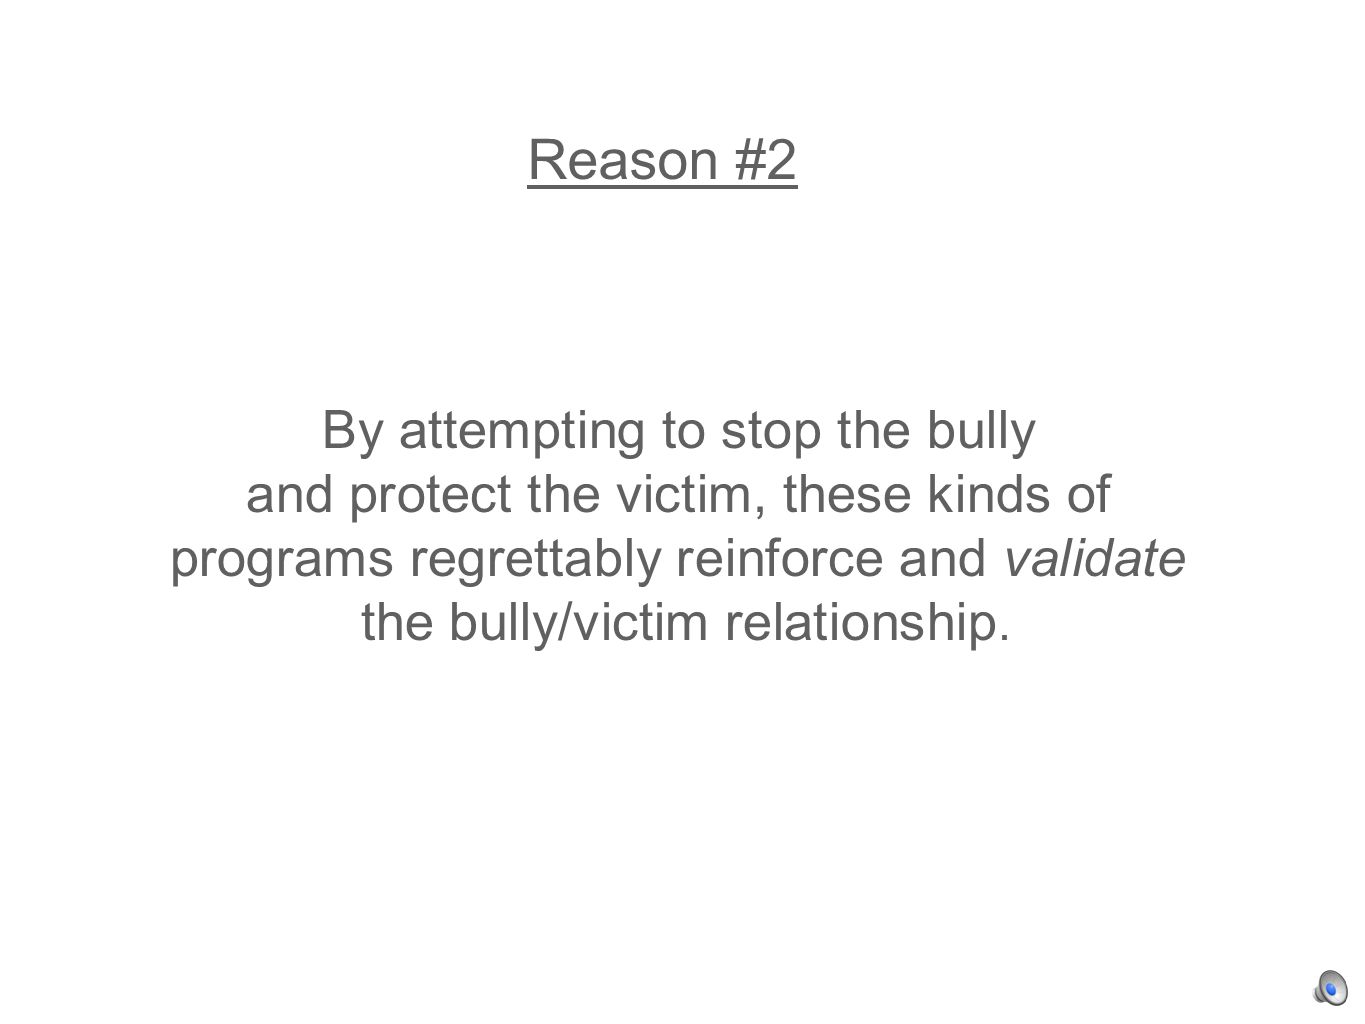 By attempting to stop the bully and protect the victim, these kinds of programs regrettably reinforce and validate the bully/victim relationship.